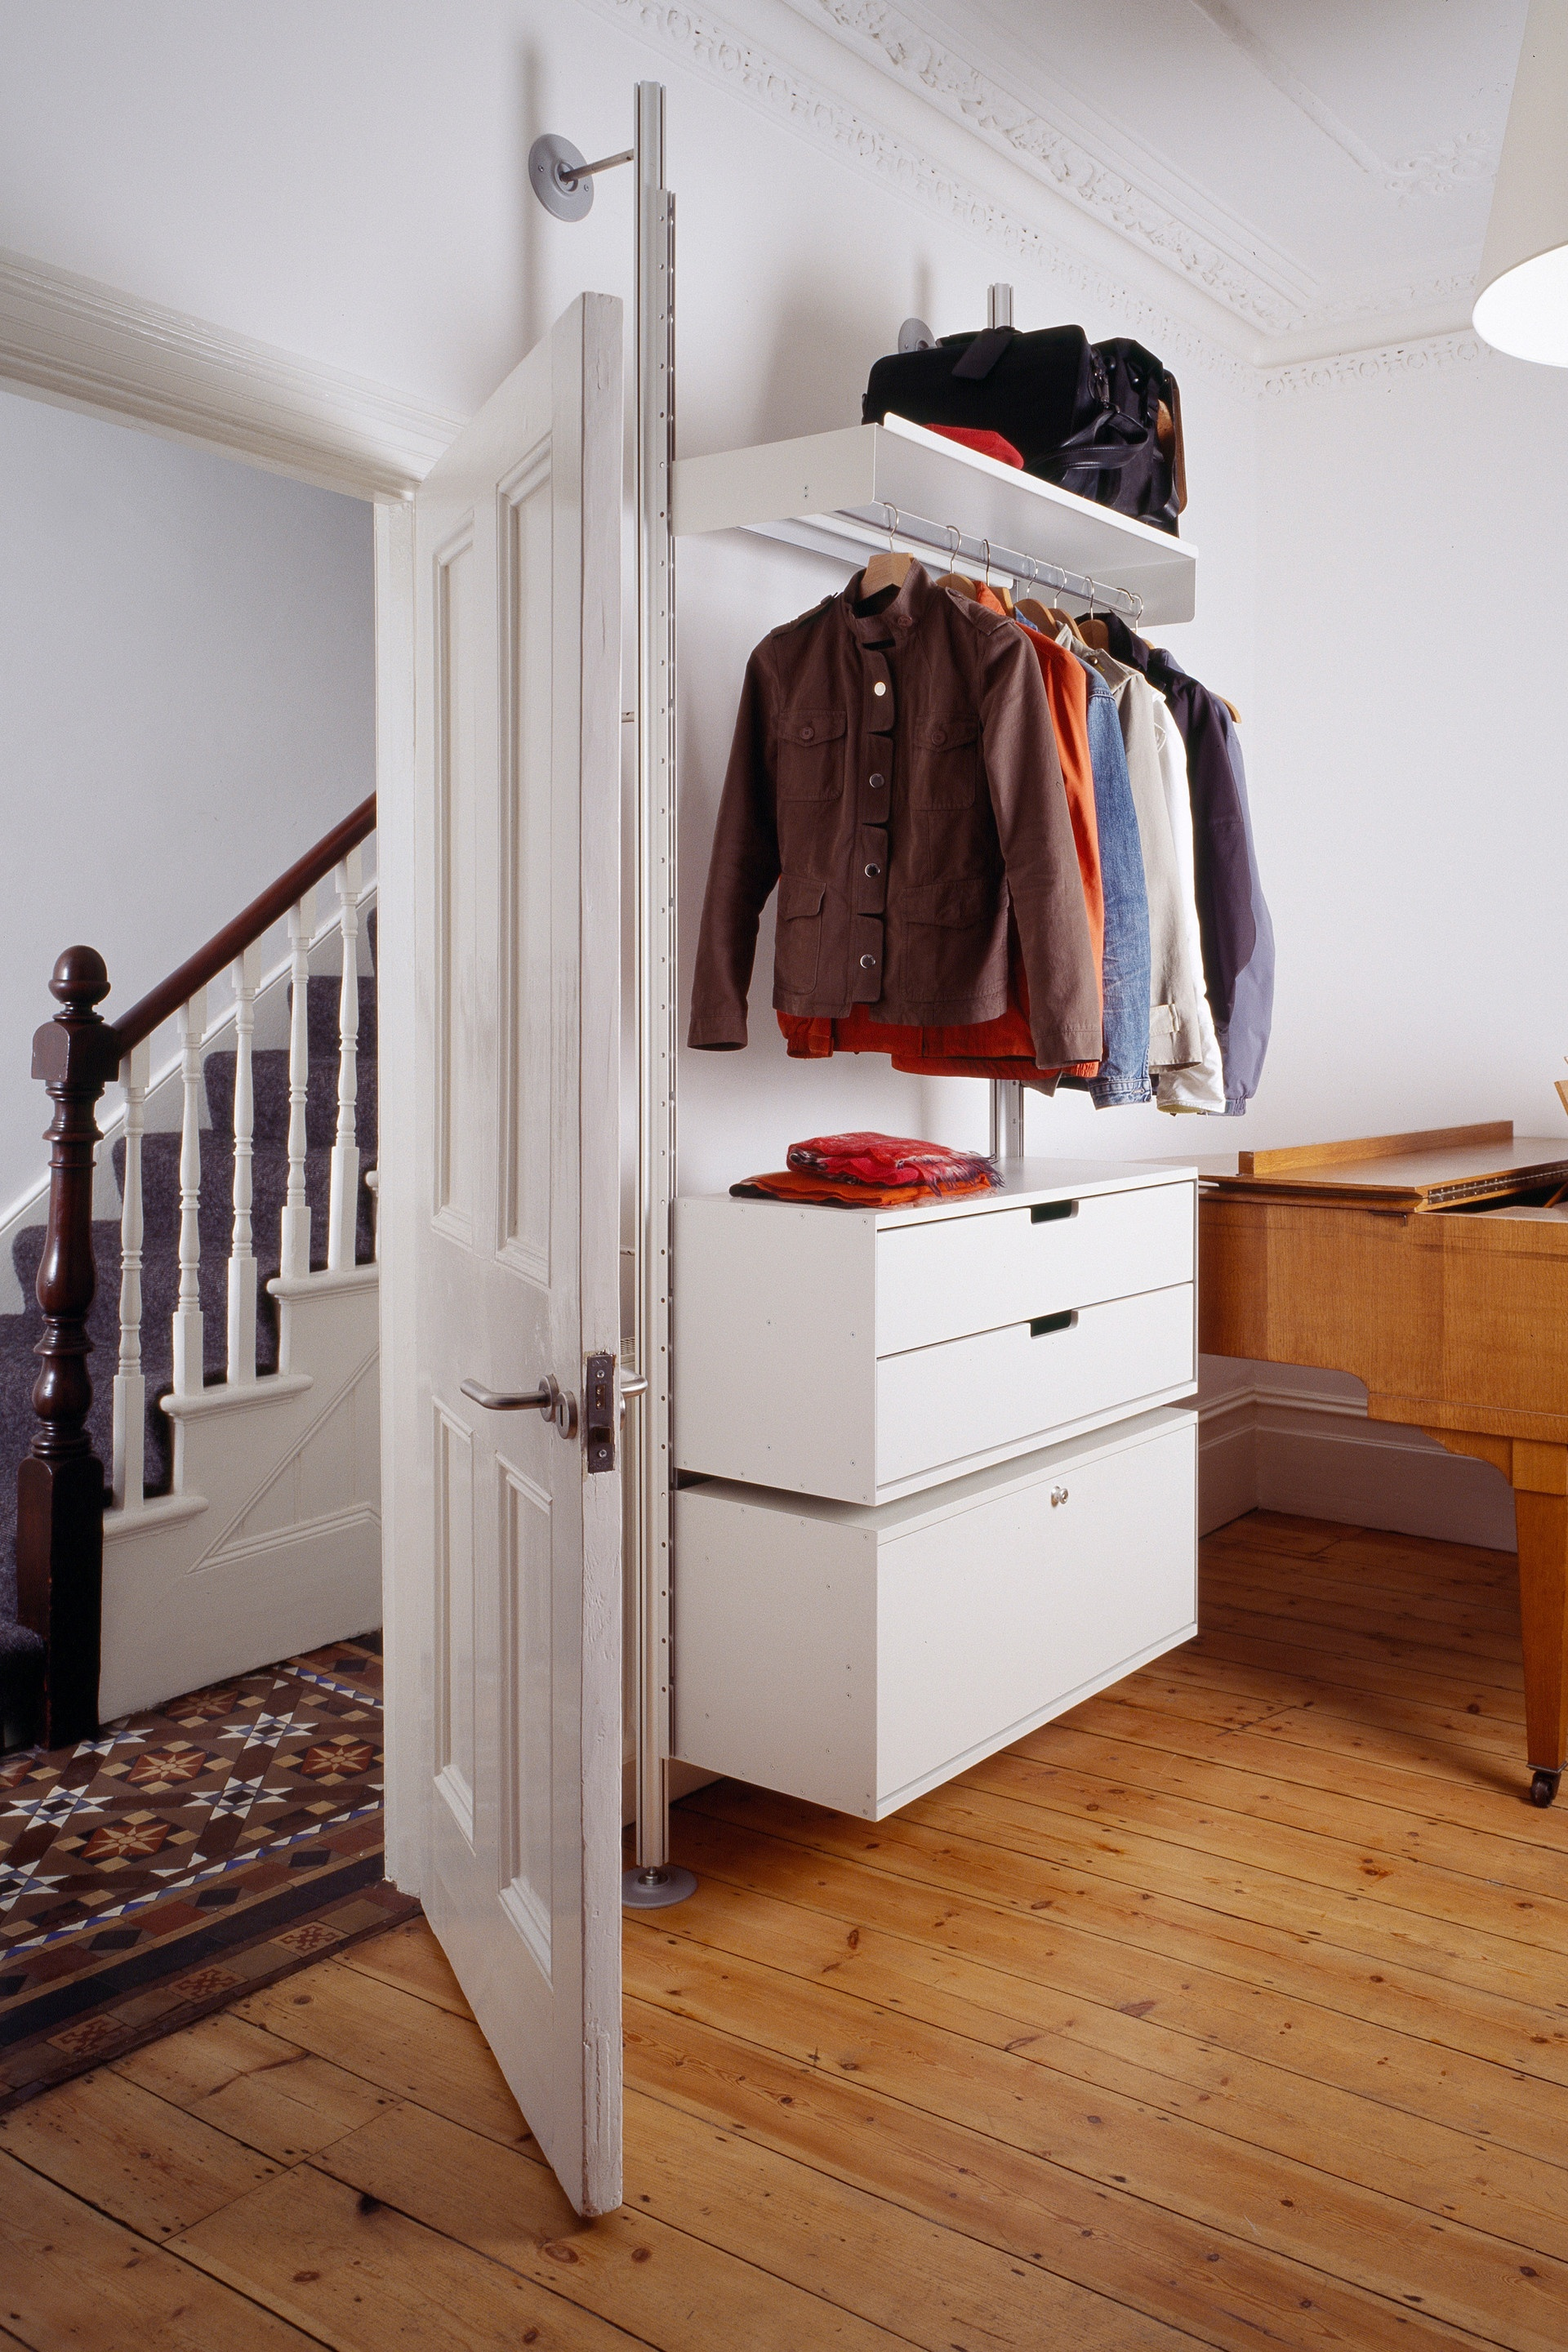 In a tight space where organisation is key, cabinets can be hung on top of each other